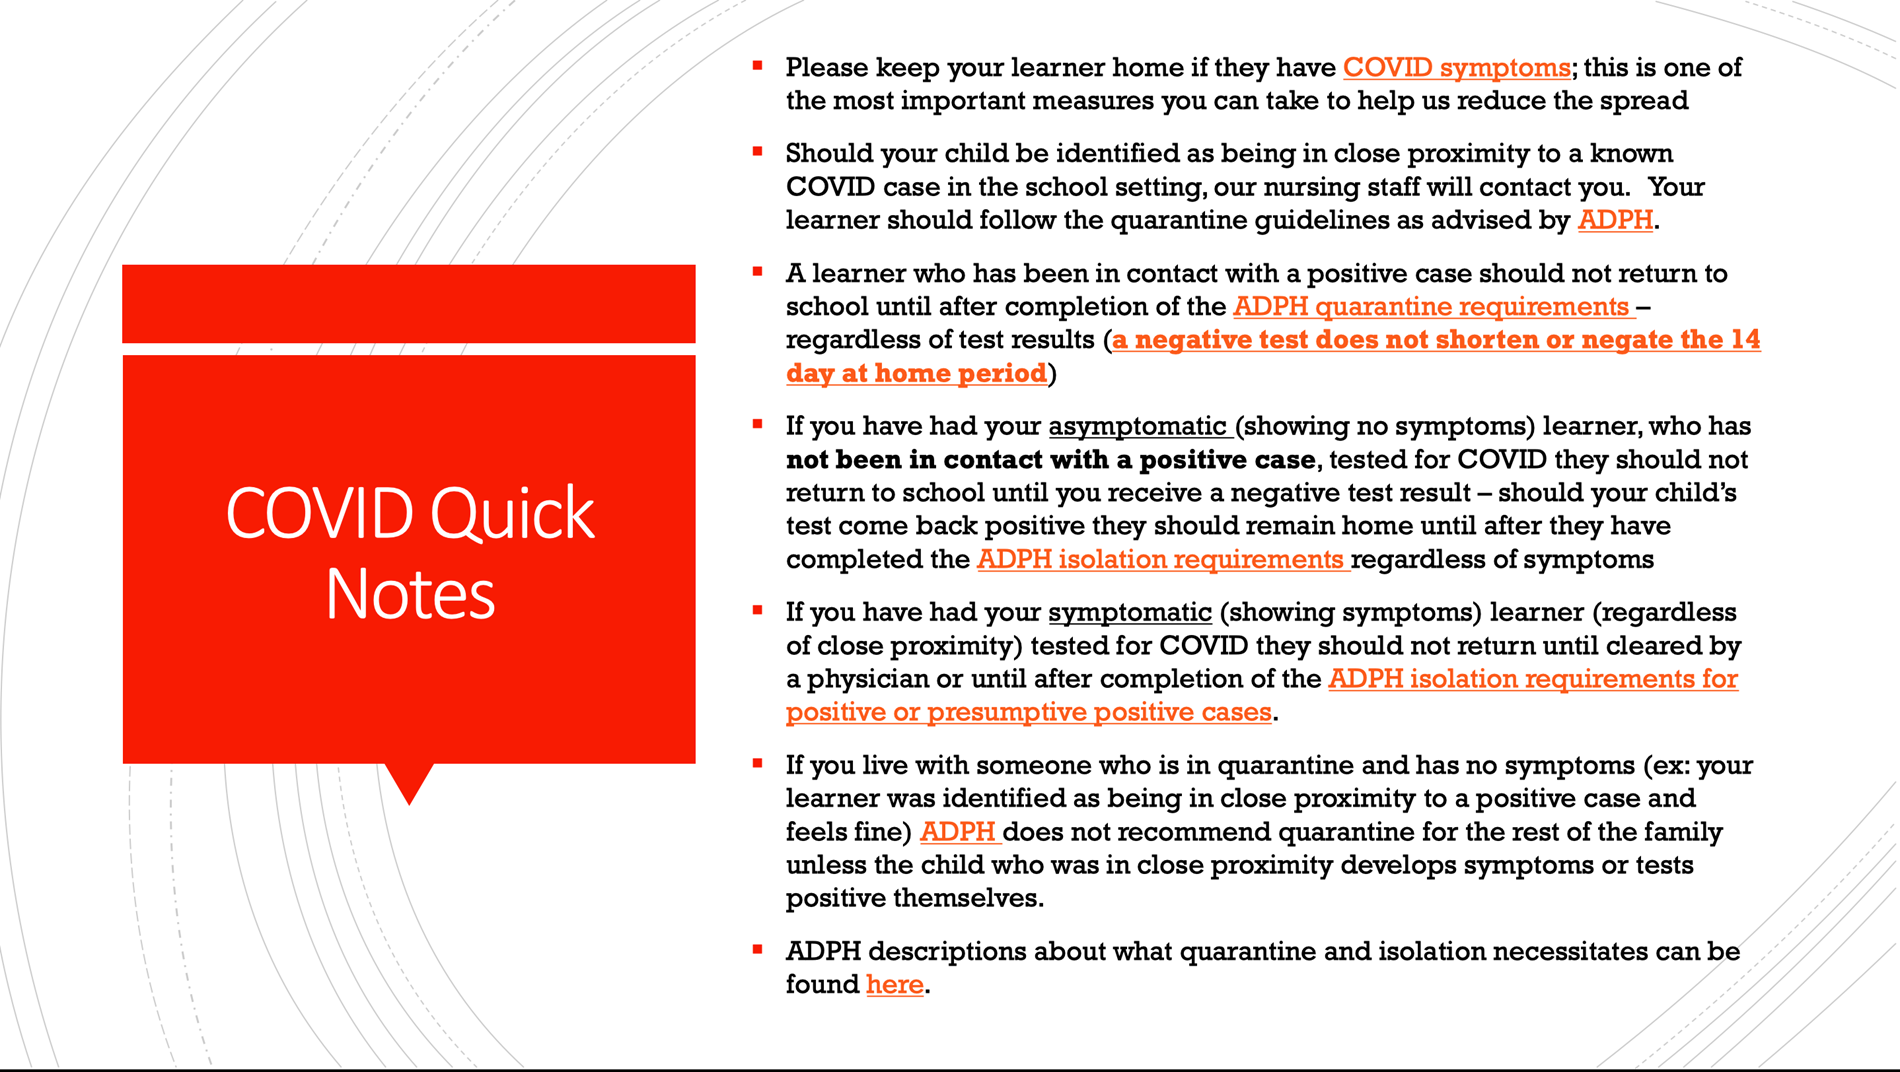 COVID Quick Notes